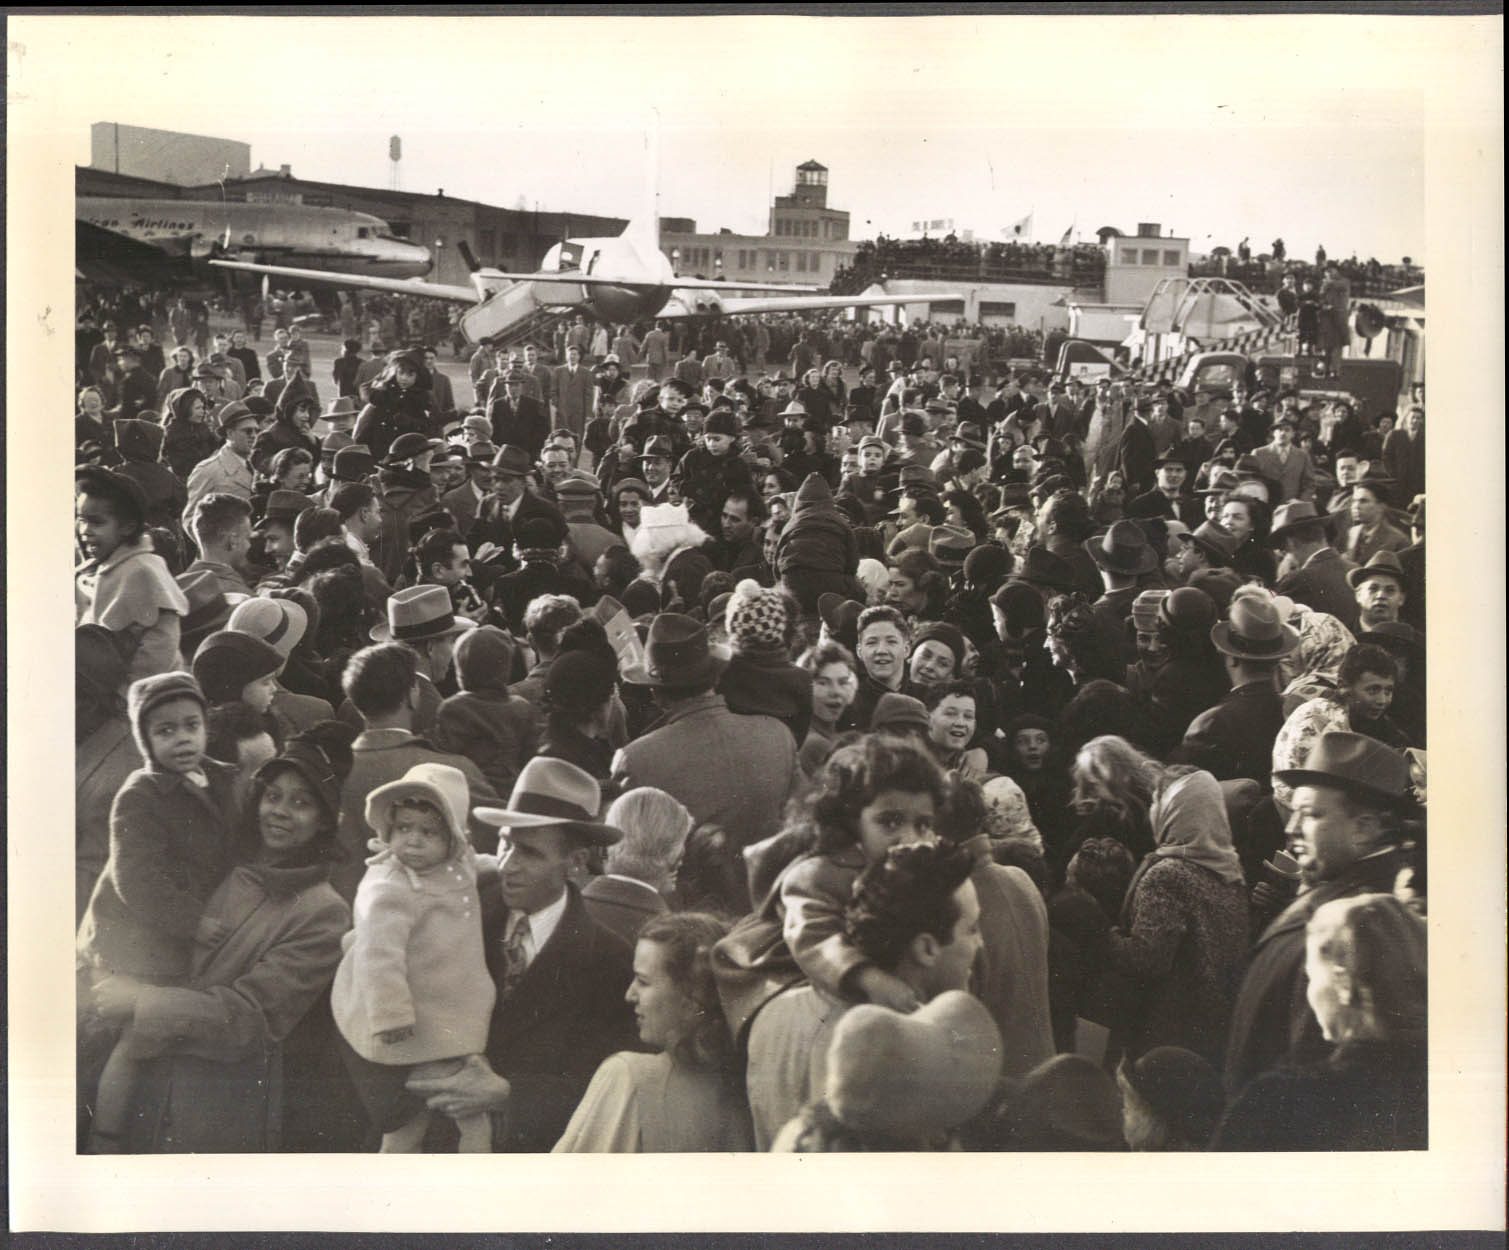 Crowd overflows to greet American Airlines Convair inaugural Boston 1948 8x10